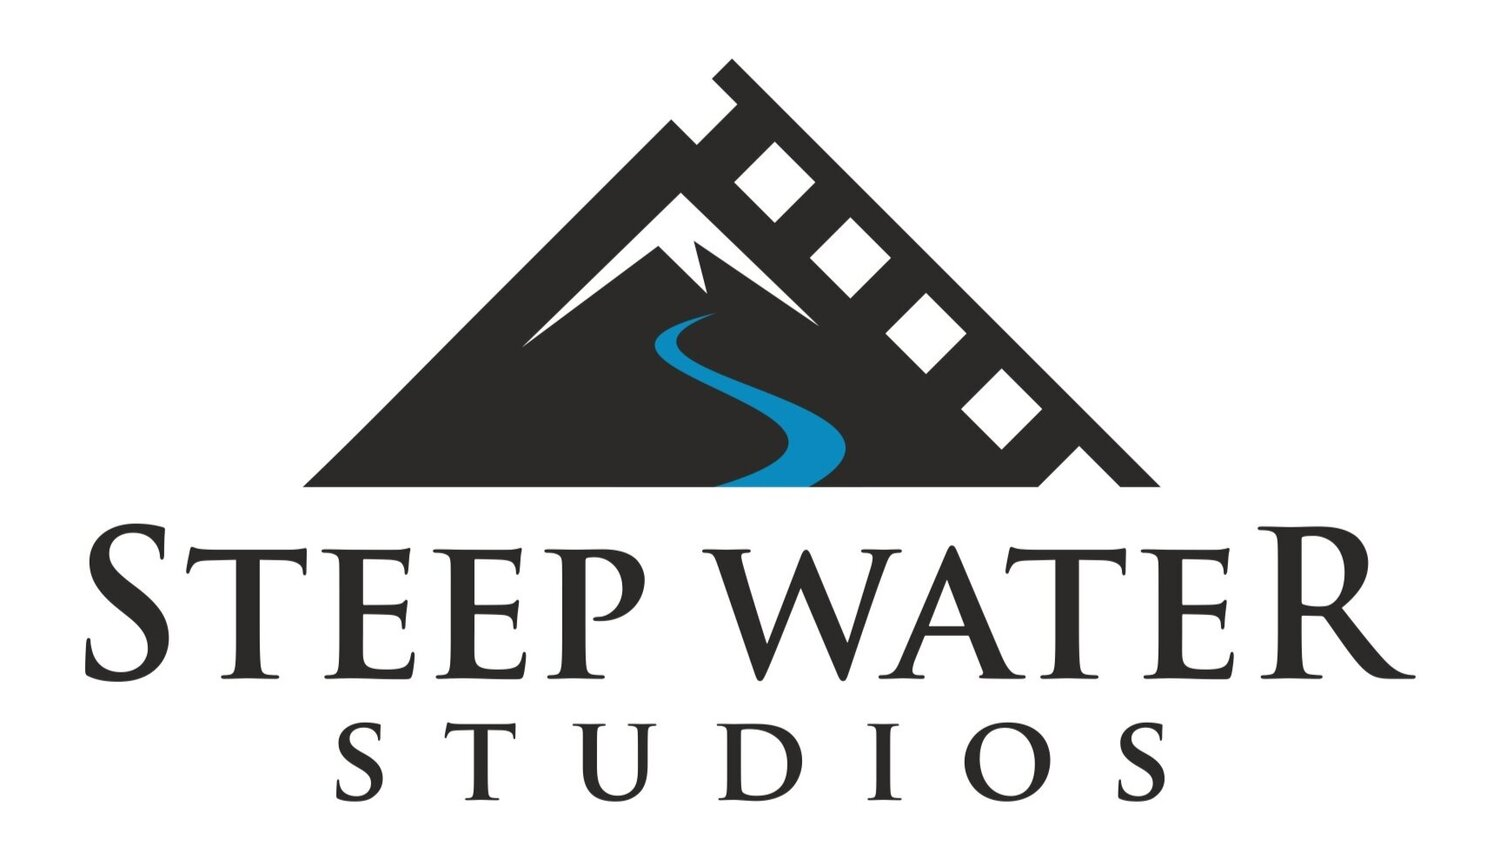 Steep Water Studios